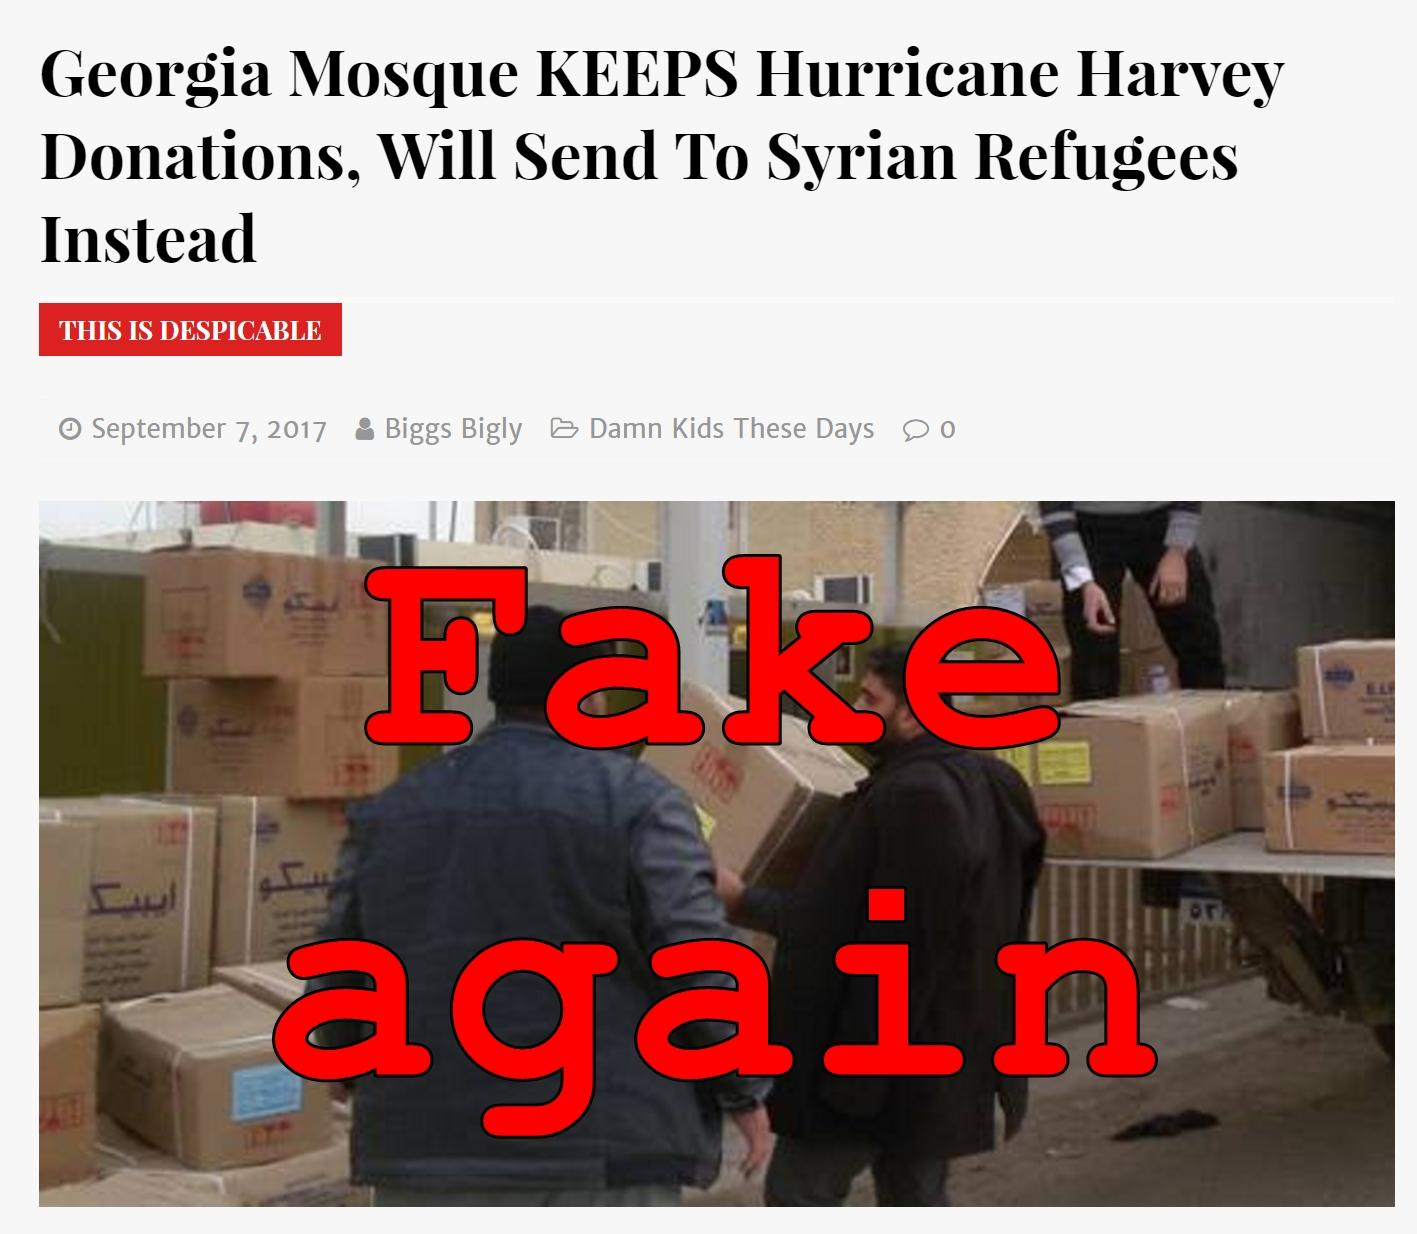 Fake News: Georgia Mosque Did NOT Keep Hurricane Harvey Donations, Will NOT Send To Syrian Refugees Instead